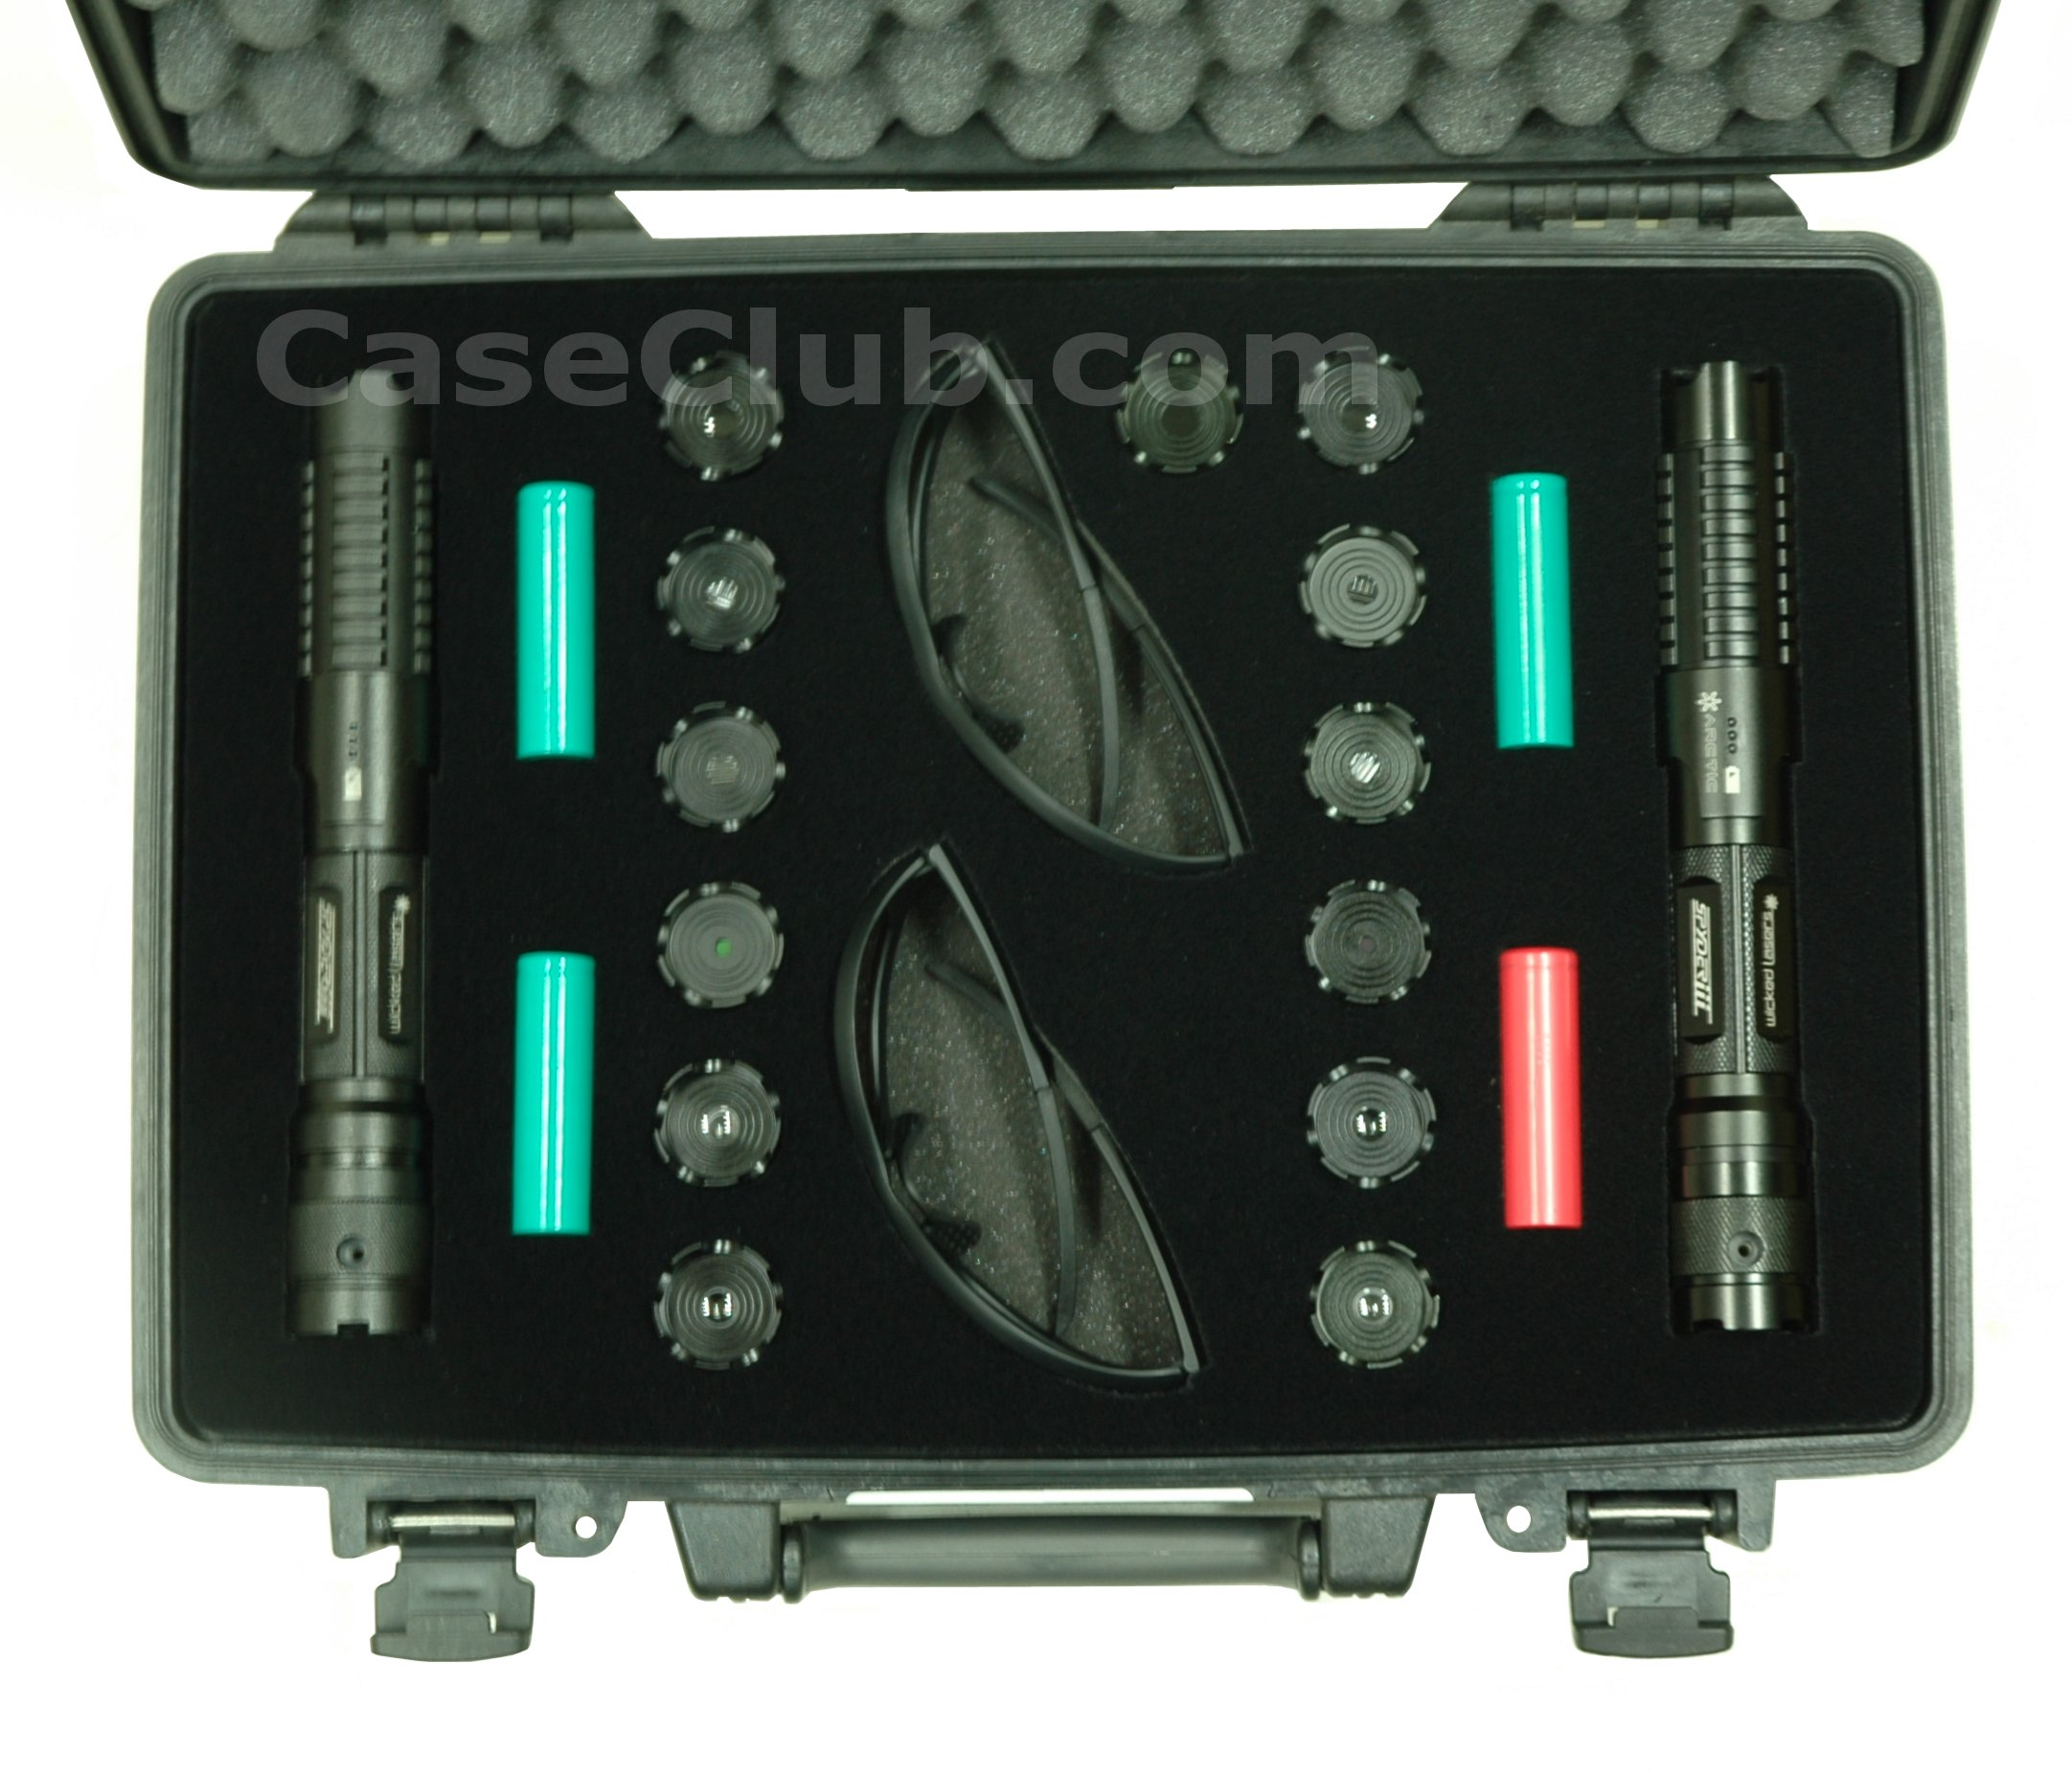 Pelican 1470 Case Custom Foam Example: Wicked Lasers Spyder 3 Case